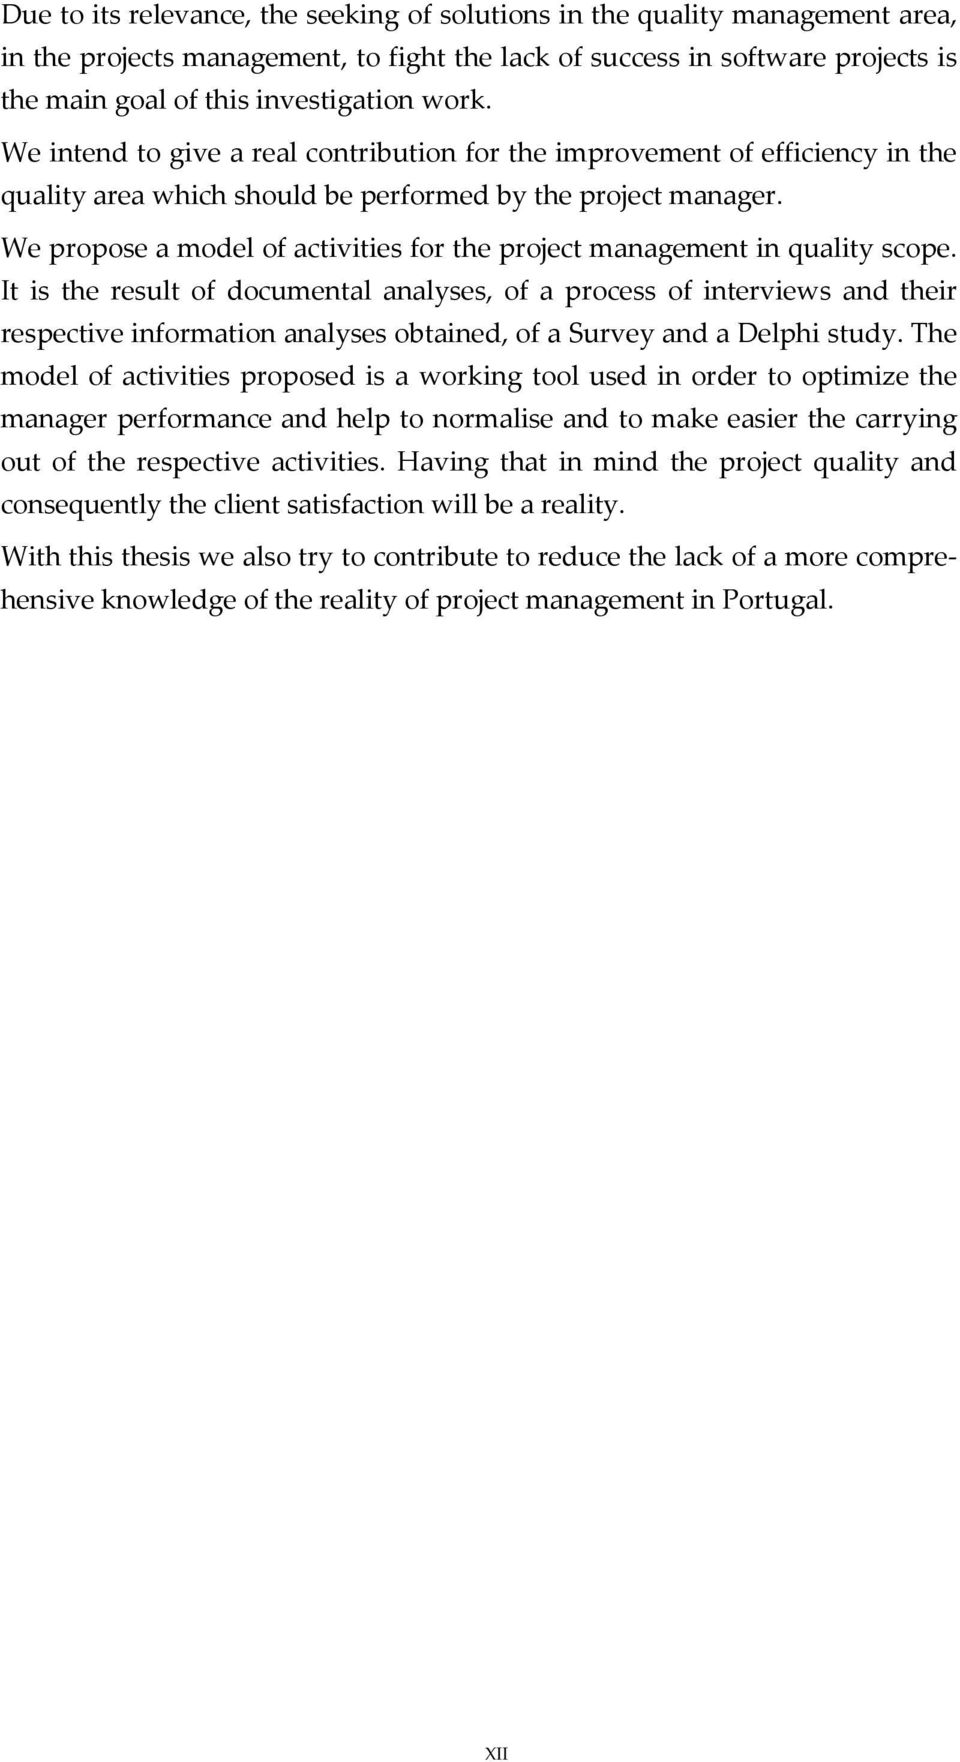 We propose a model of activities for the project management in quality scope.